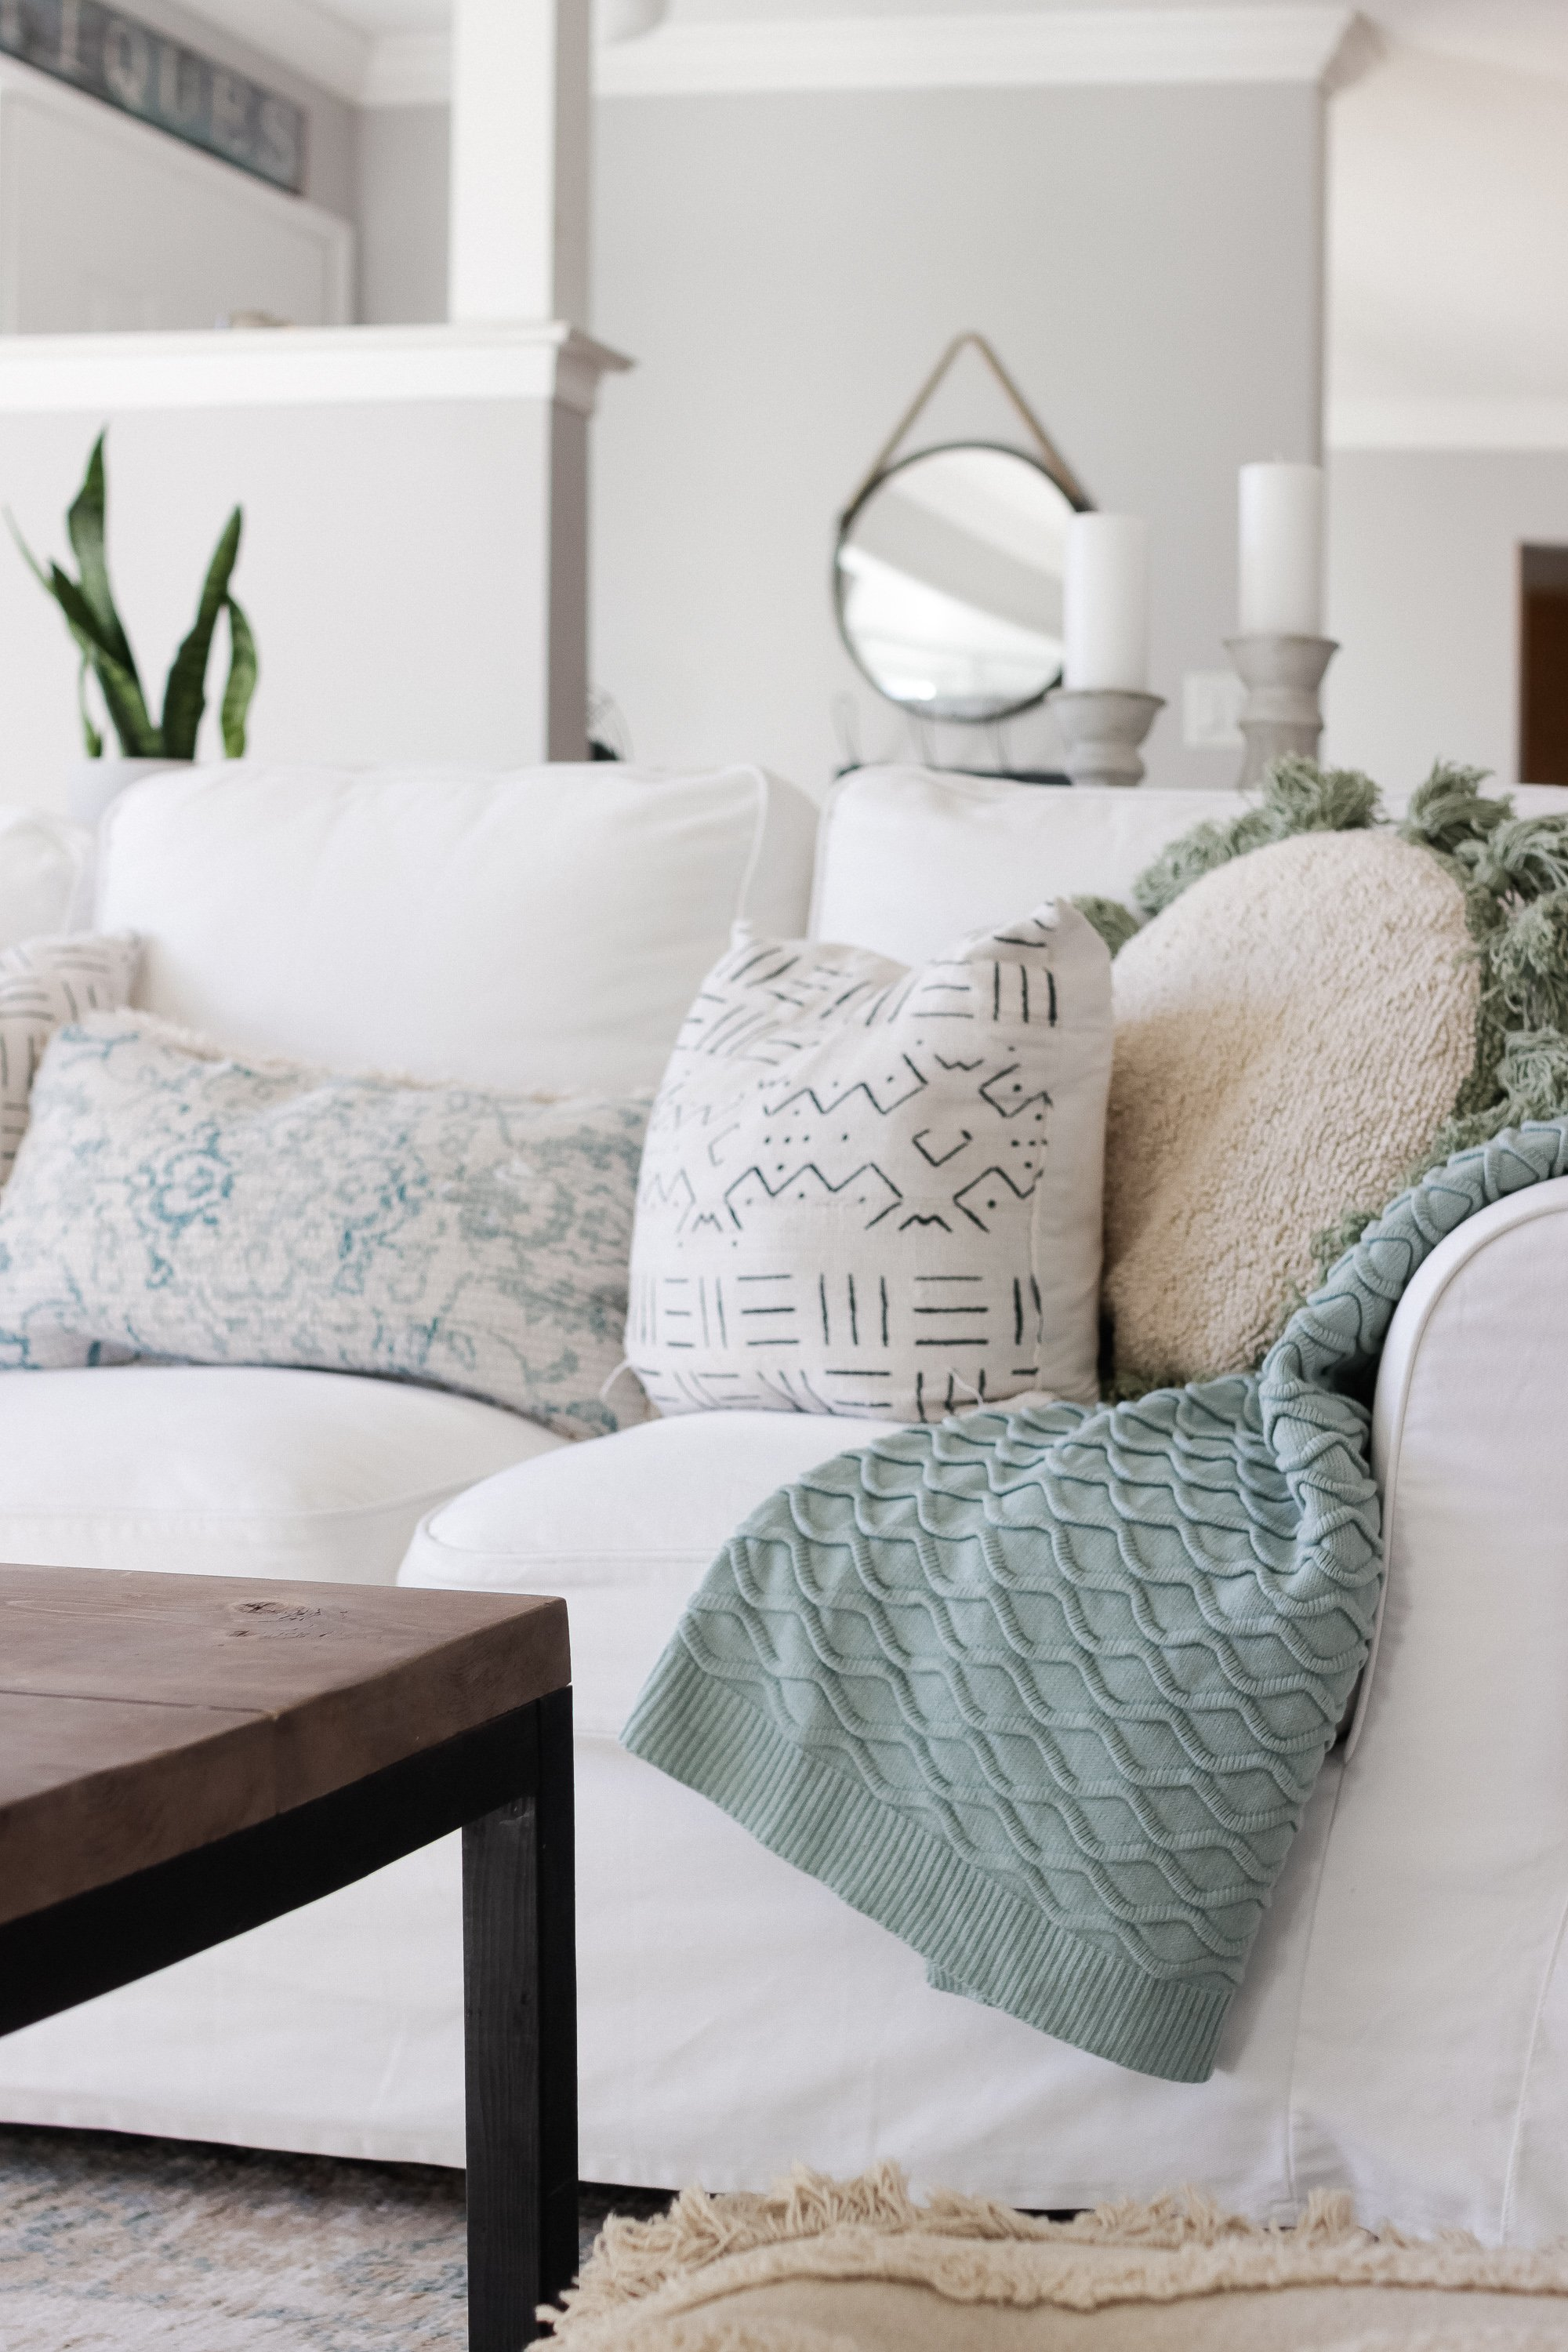 Living Room with Bohemian Vibes. Our simple and inexpensive modern farmhouse bohemian